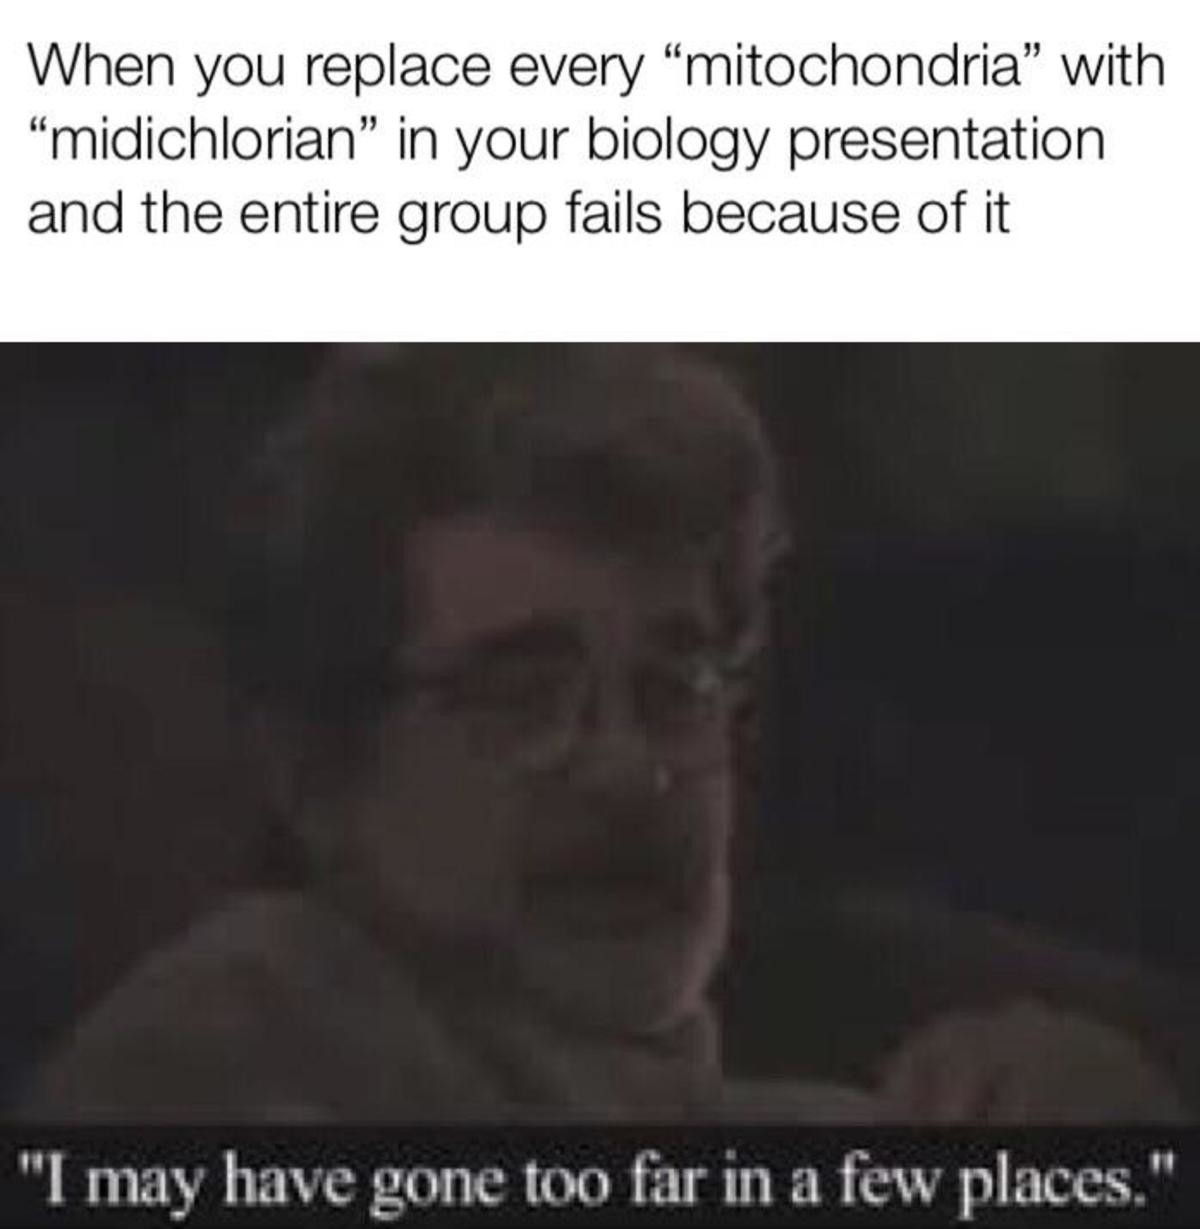 The mitochondria is the powerhouse of the cell. .. THE MITHOCONDRIA IS THE POWERHOUSE OF THE CELL